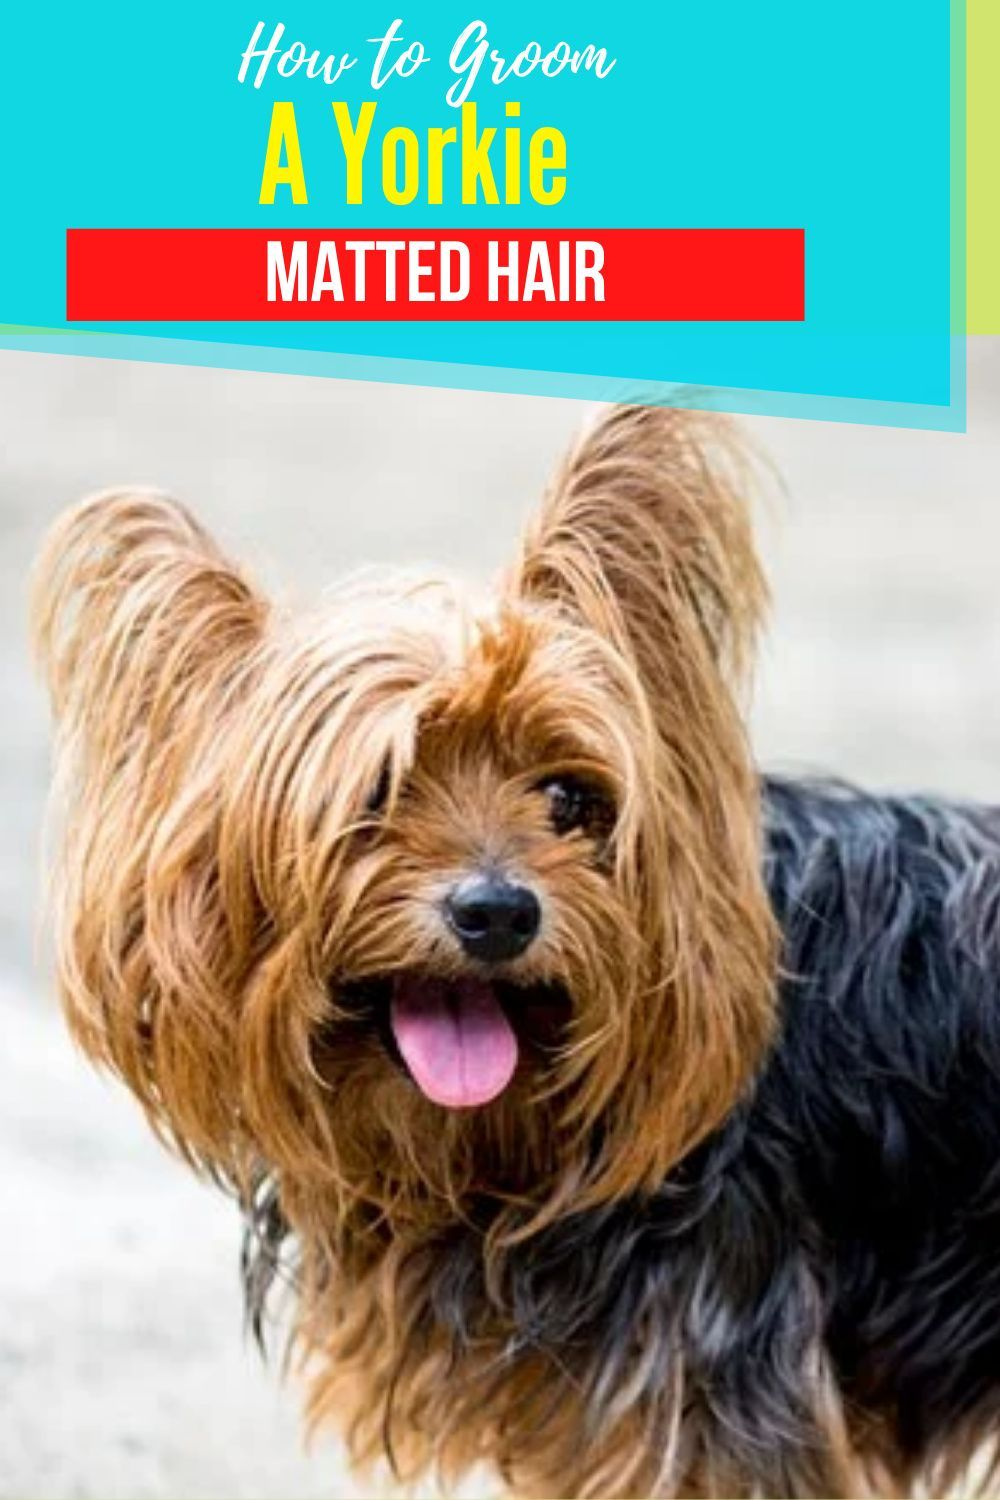 How to groom a yorkie with matted hair yorkshireterrier